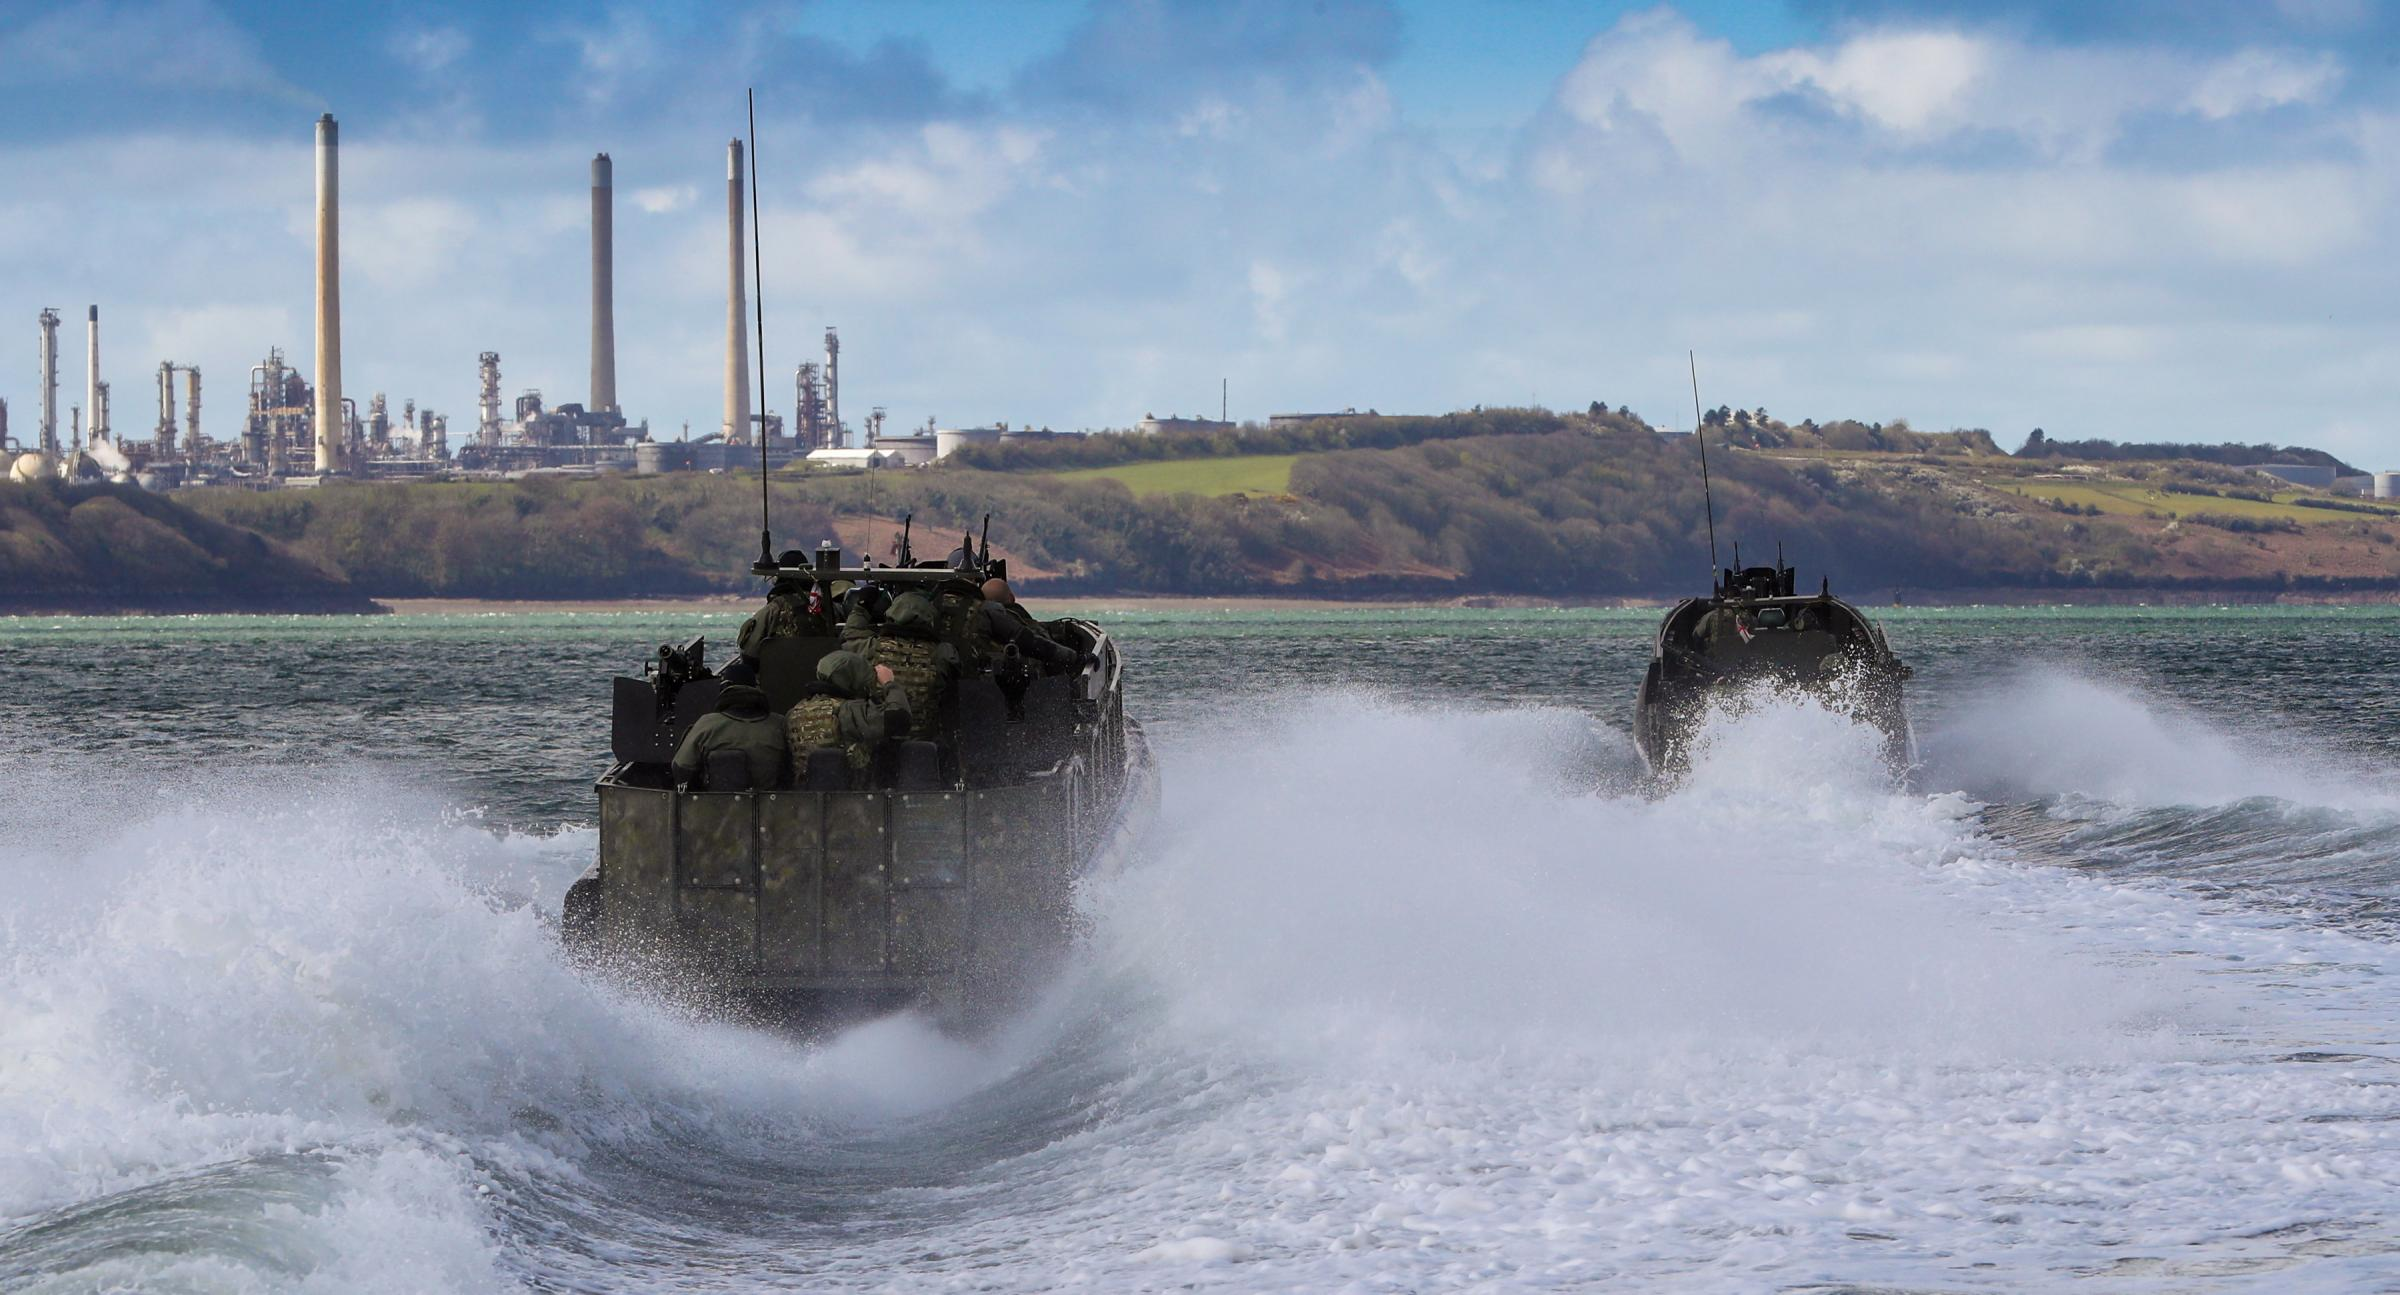 'Fire and fury' training by Royal Marines at Castlemartin